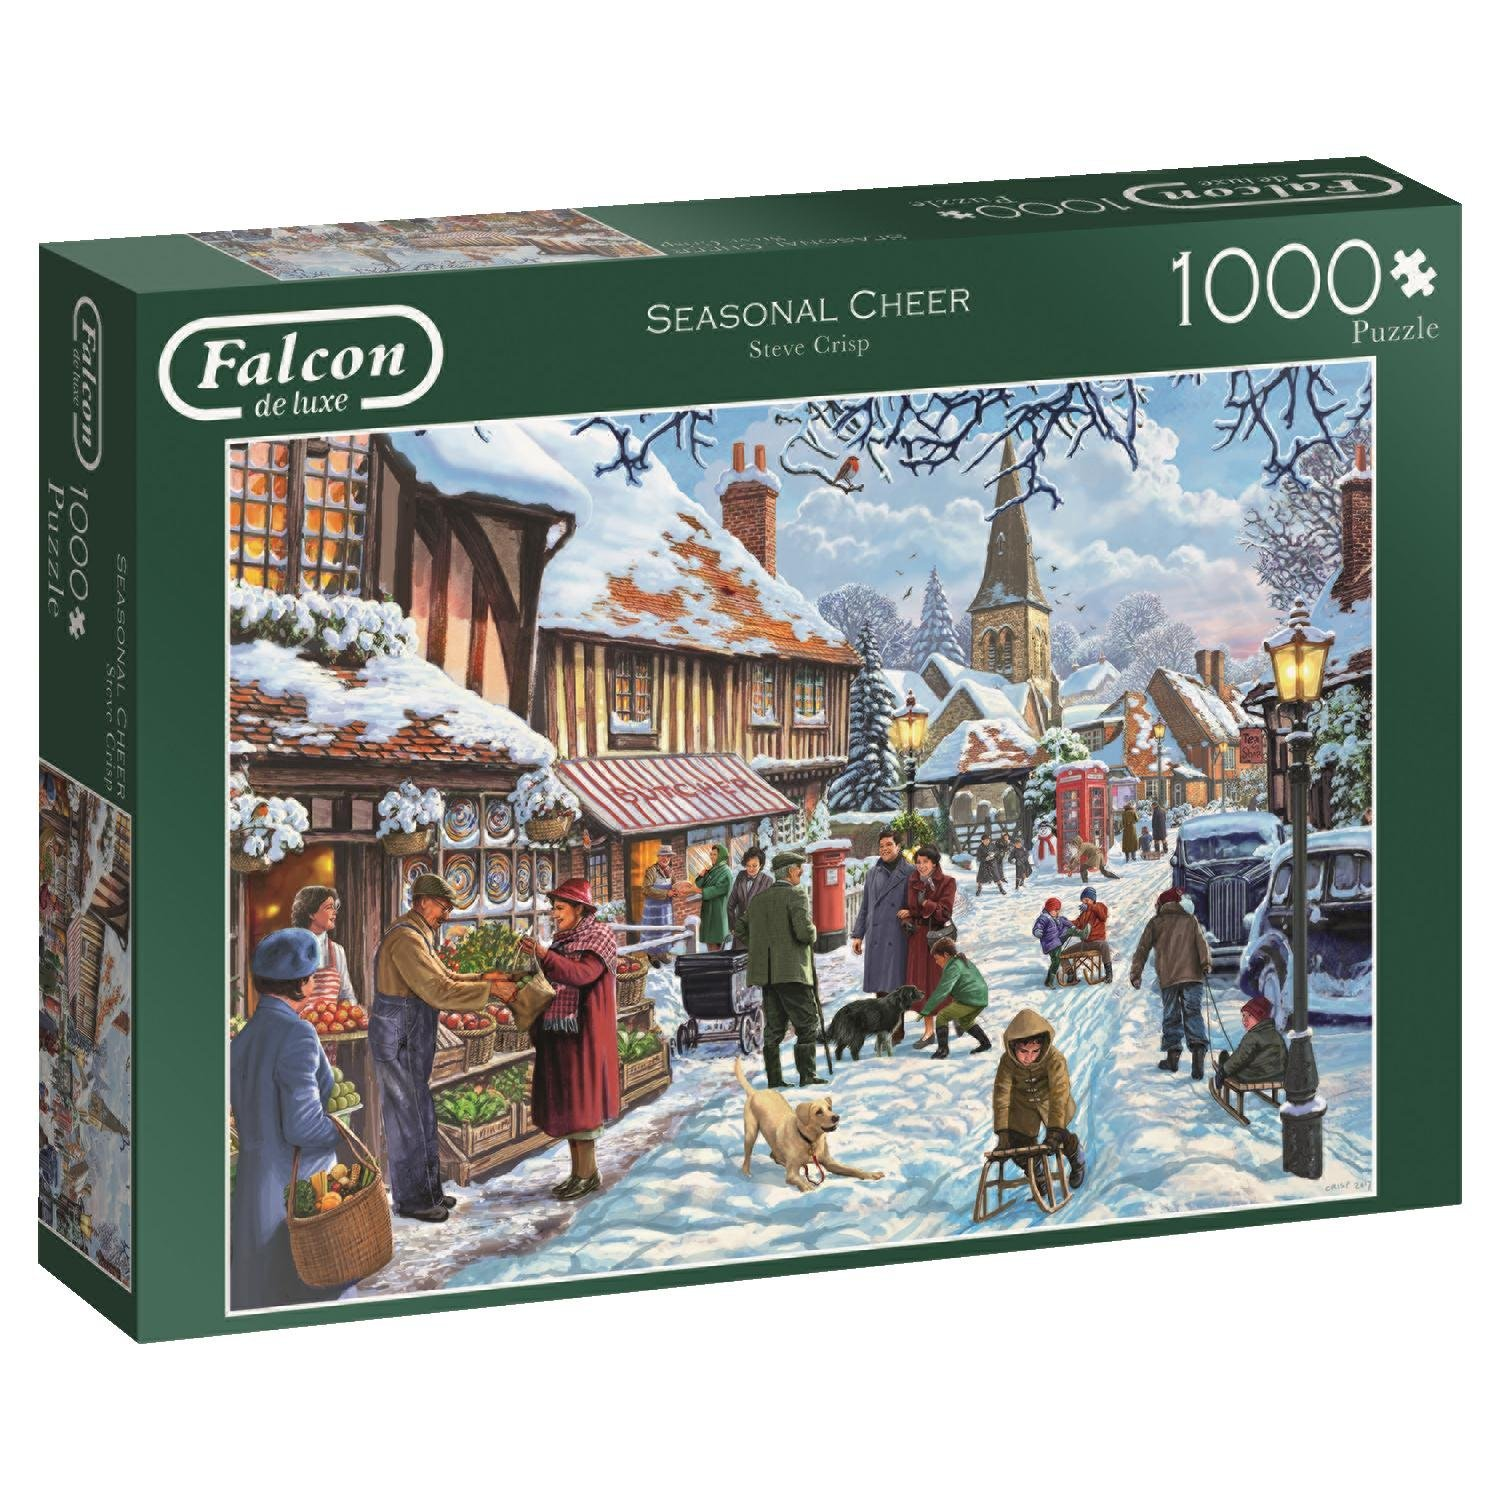 Falcon, Seasonal Cheer, 1000pc jigsaw